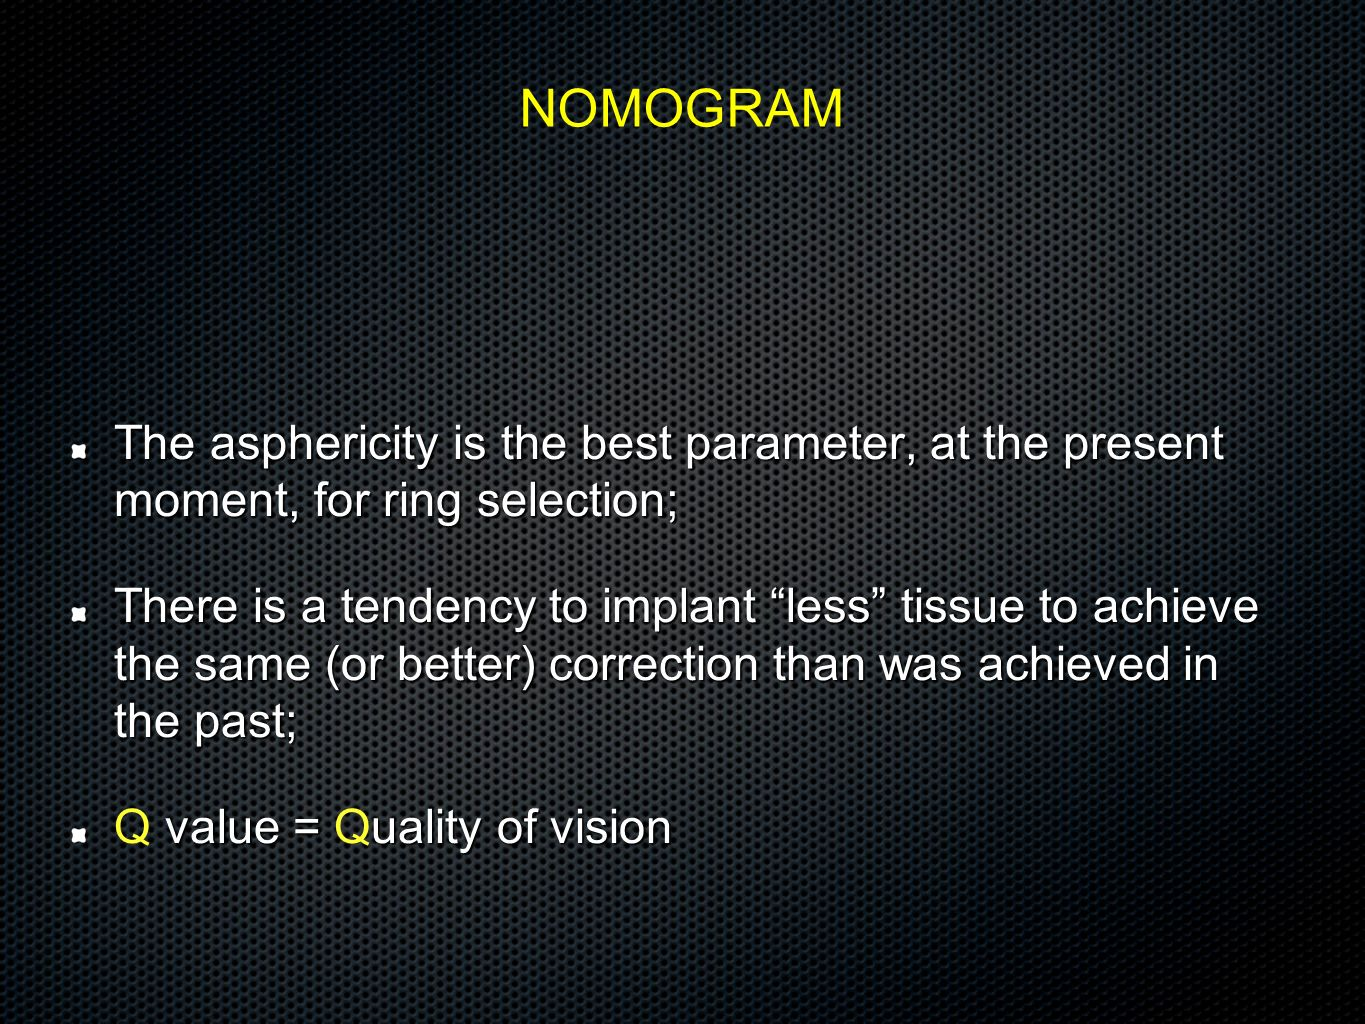 NOMOGRAM The asphericity is the best parameter, at the present moment, for ring selection;